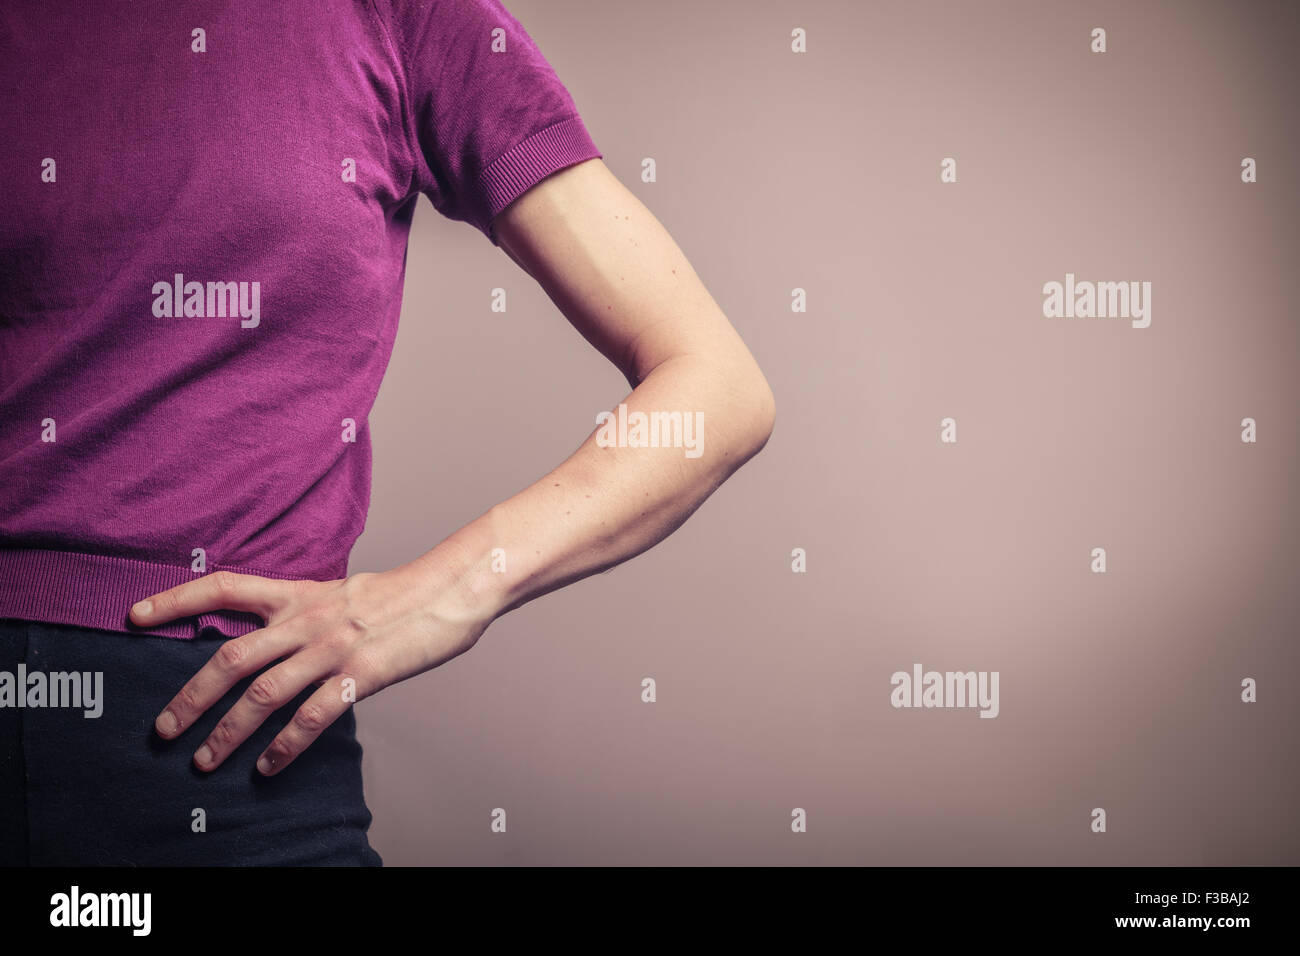 A young woman in a purple top is resting her hand on her hip - Stock Image